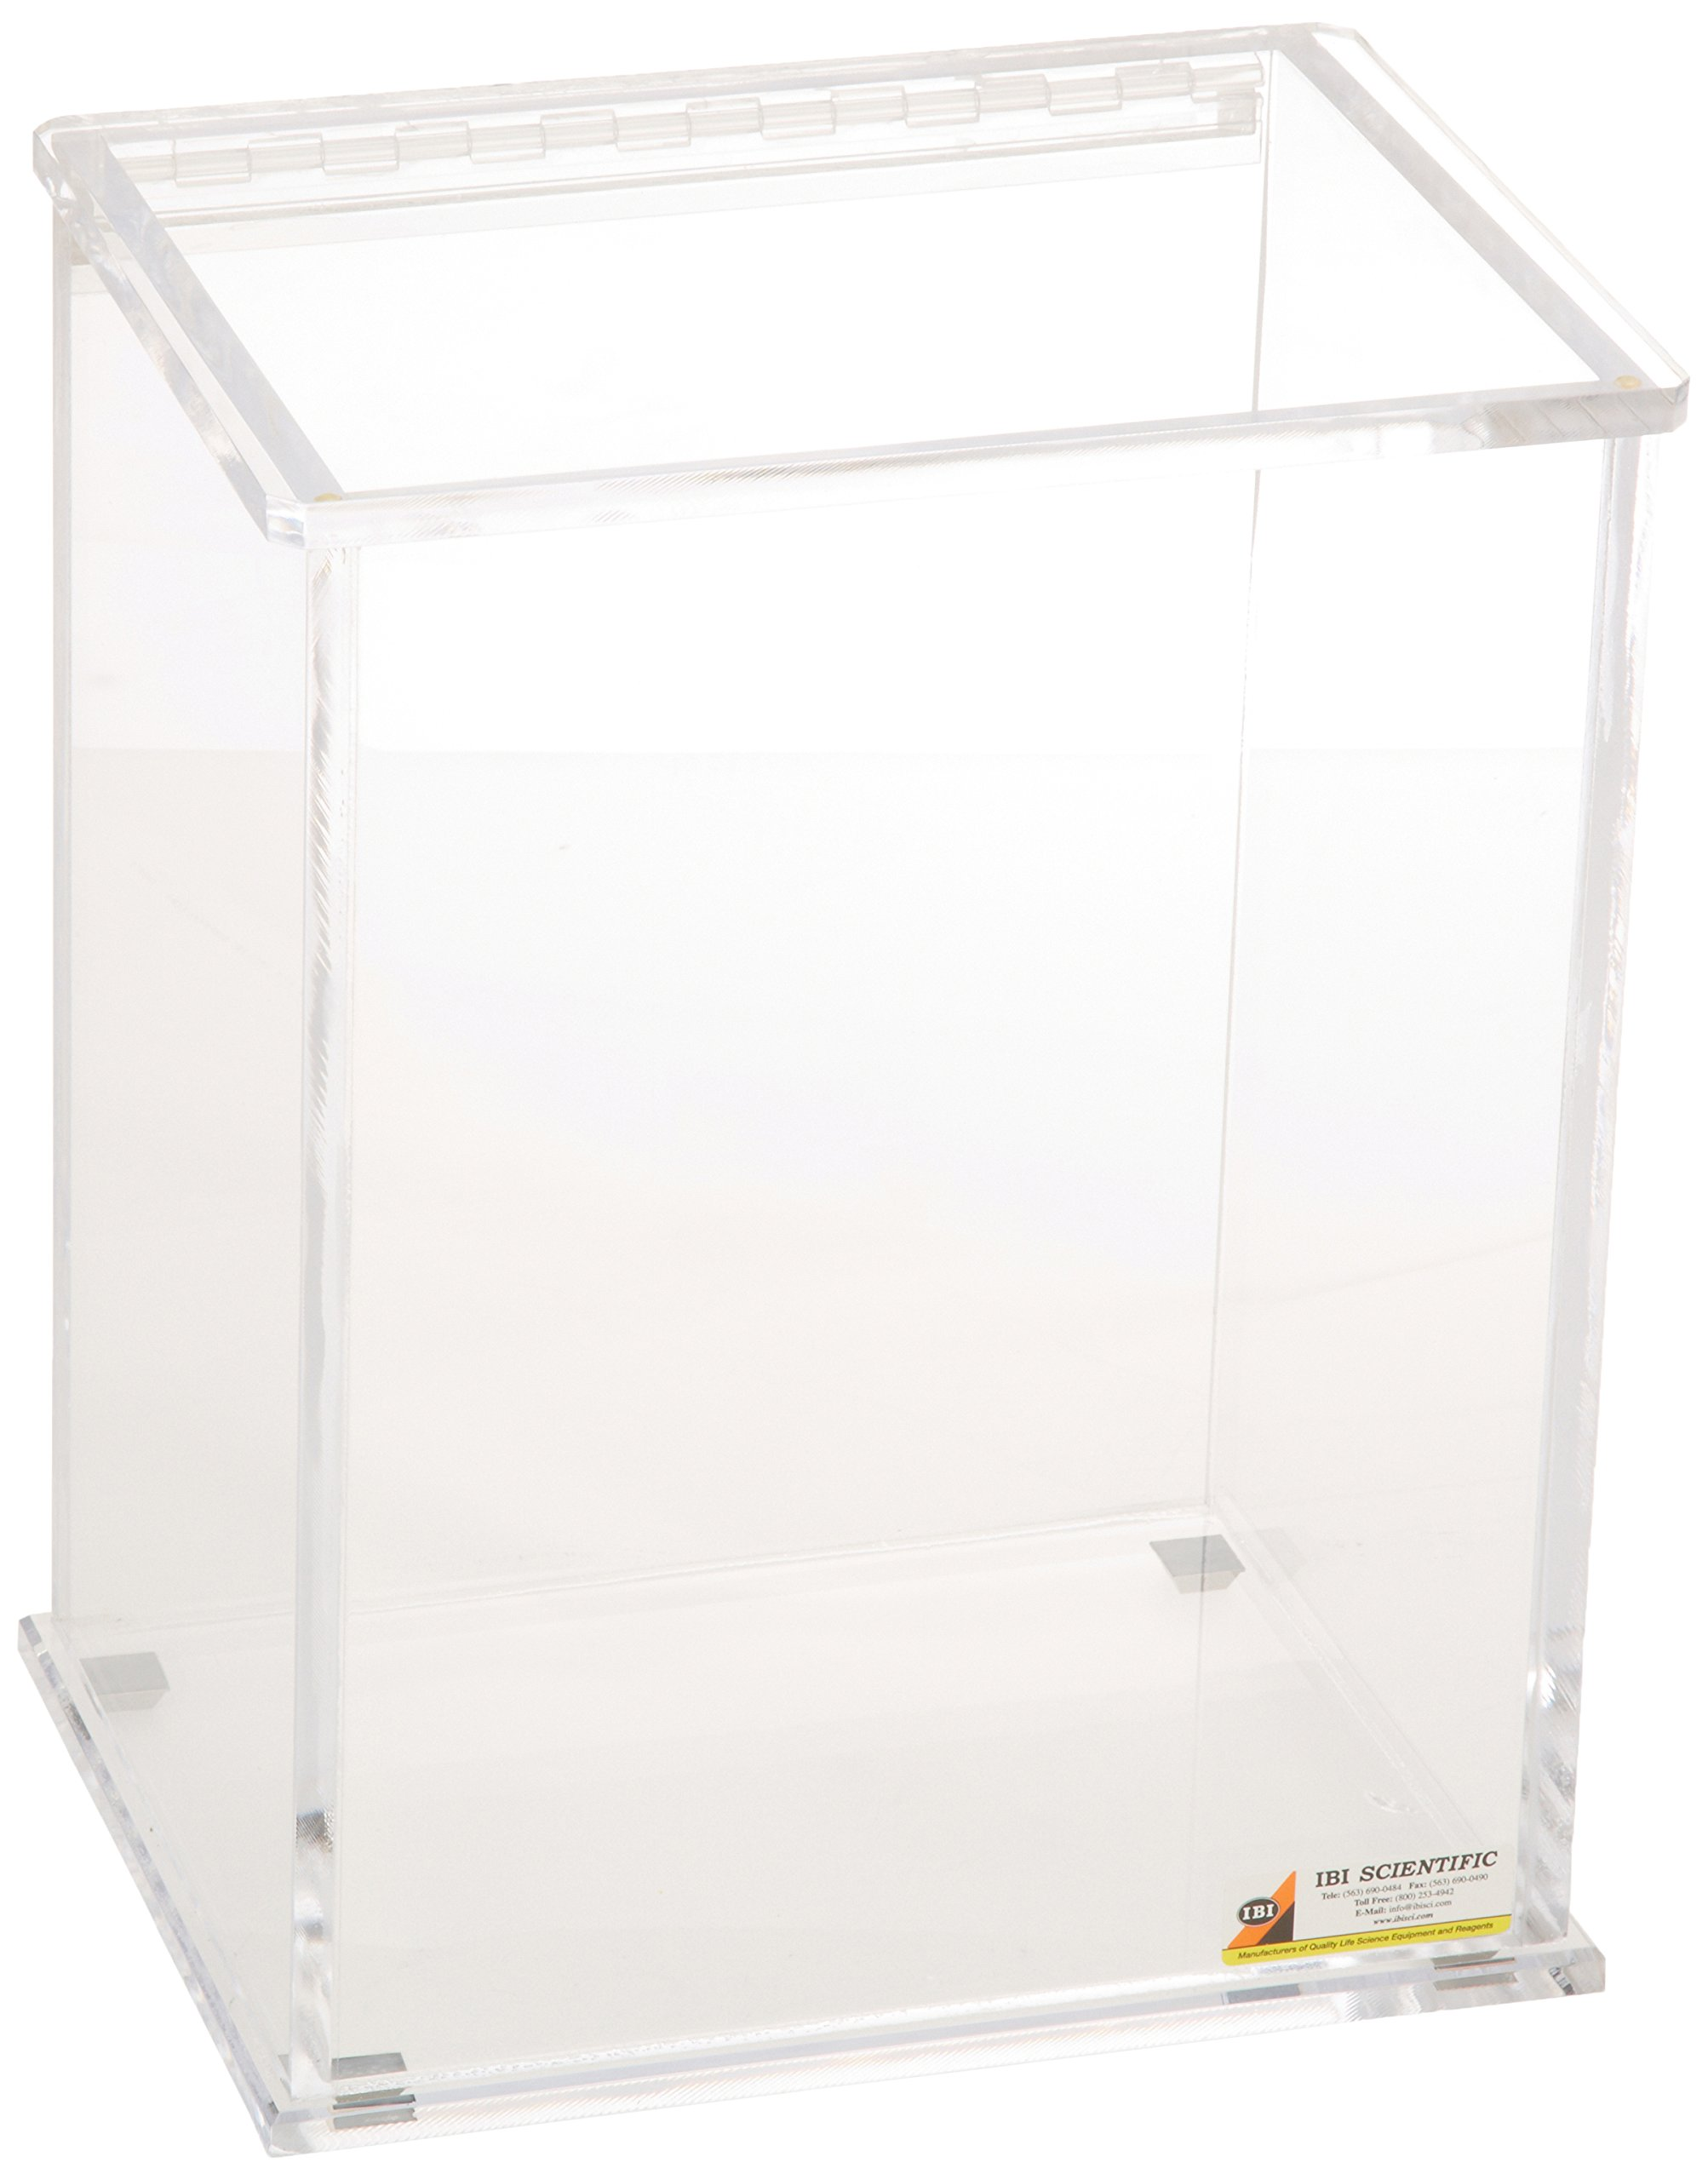 IBI Scientific WH-160 Beta-Gard Acrylic Medium Waste Container with Hinged Lid, 8-3/4'' Width x 13-1/4'' Height x 8-3/4'' Depth